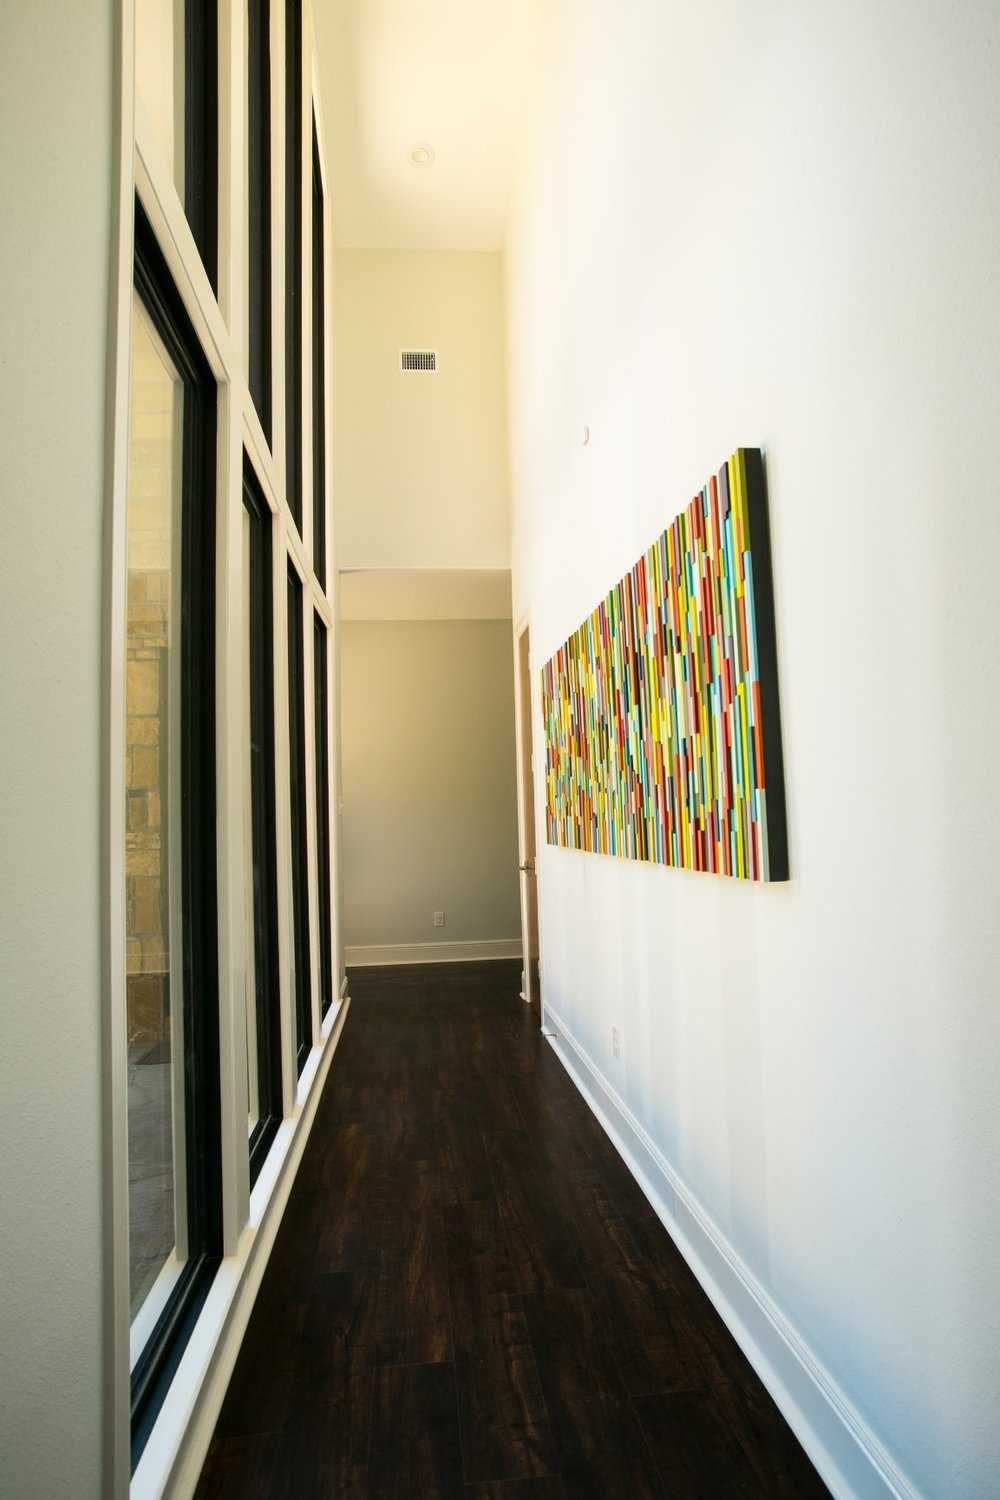 Contemporary art makes this home one of a kind! - Ambiance - Jill Ornelas